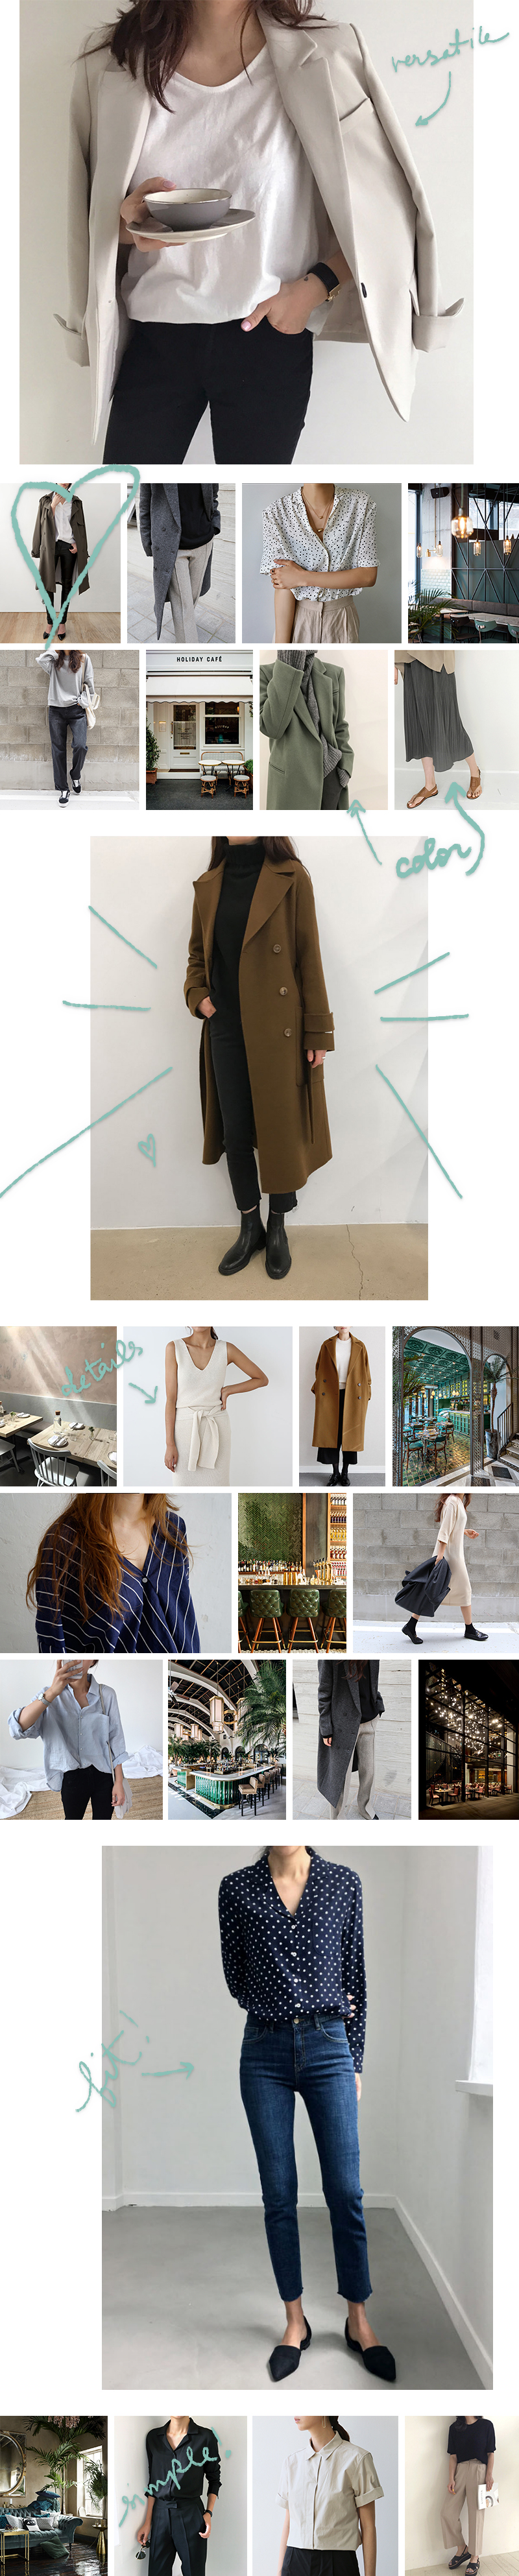 Inspiration-capsule-work-wardrobe